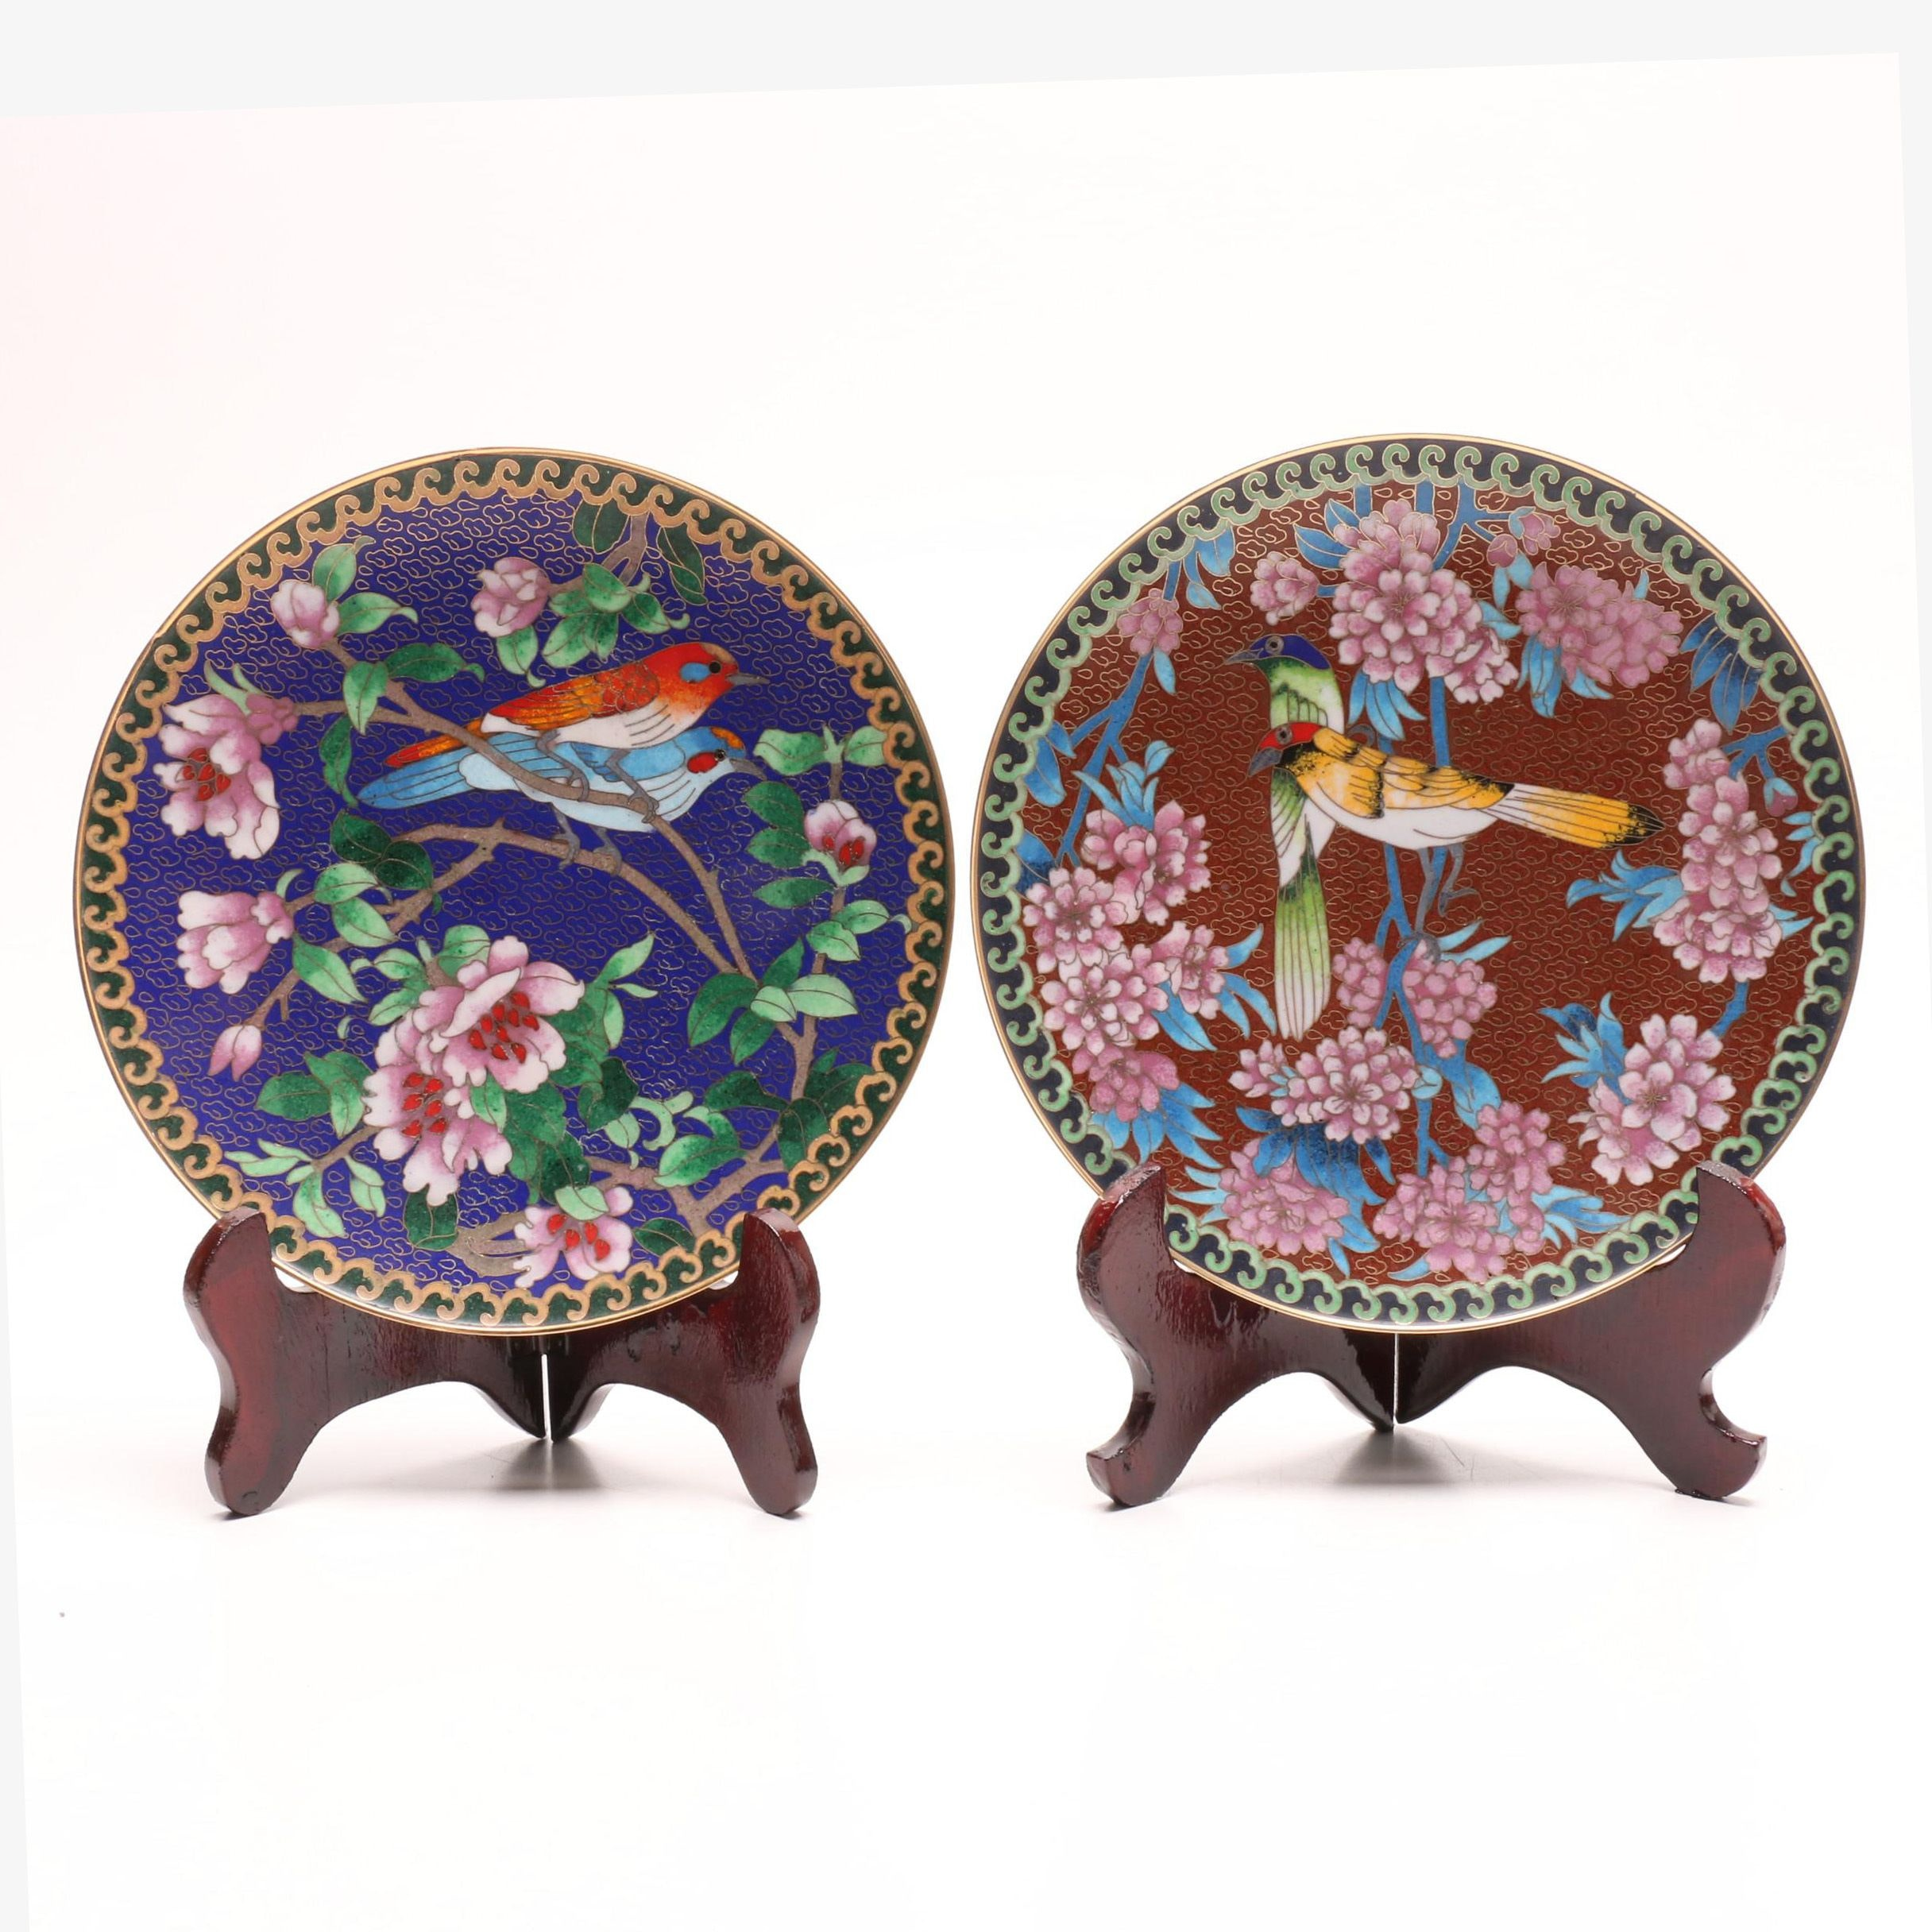 Chinese Cloisonné Plates with Stands